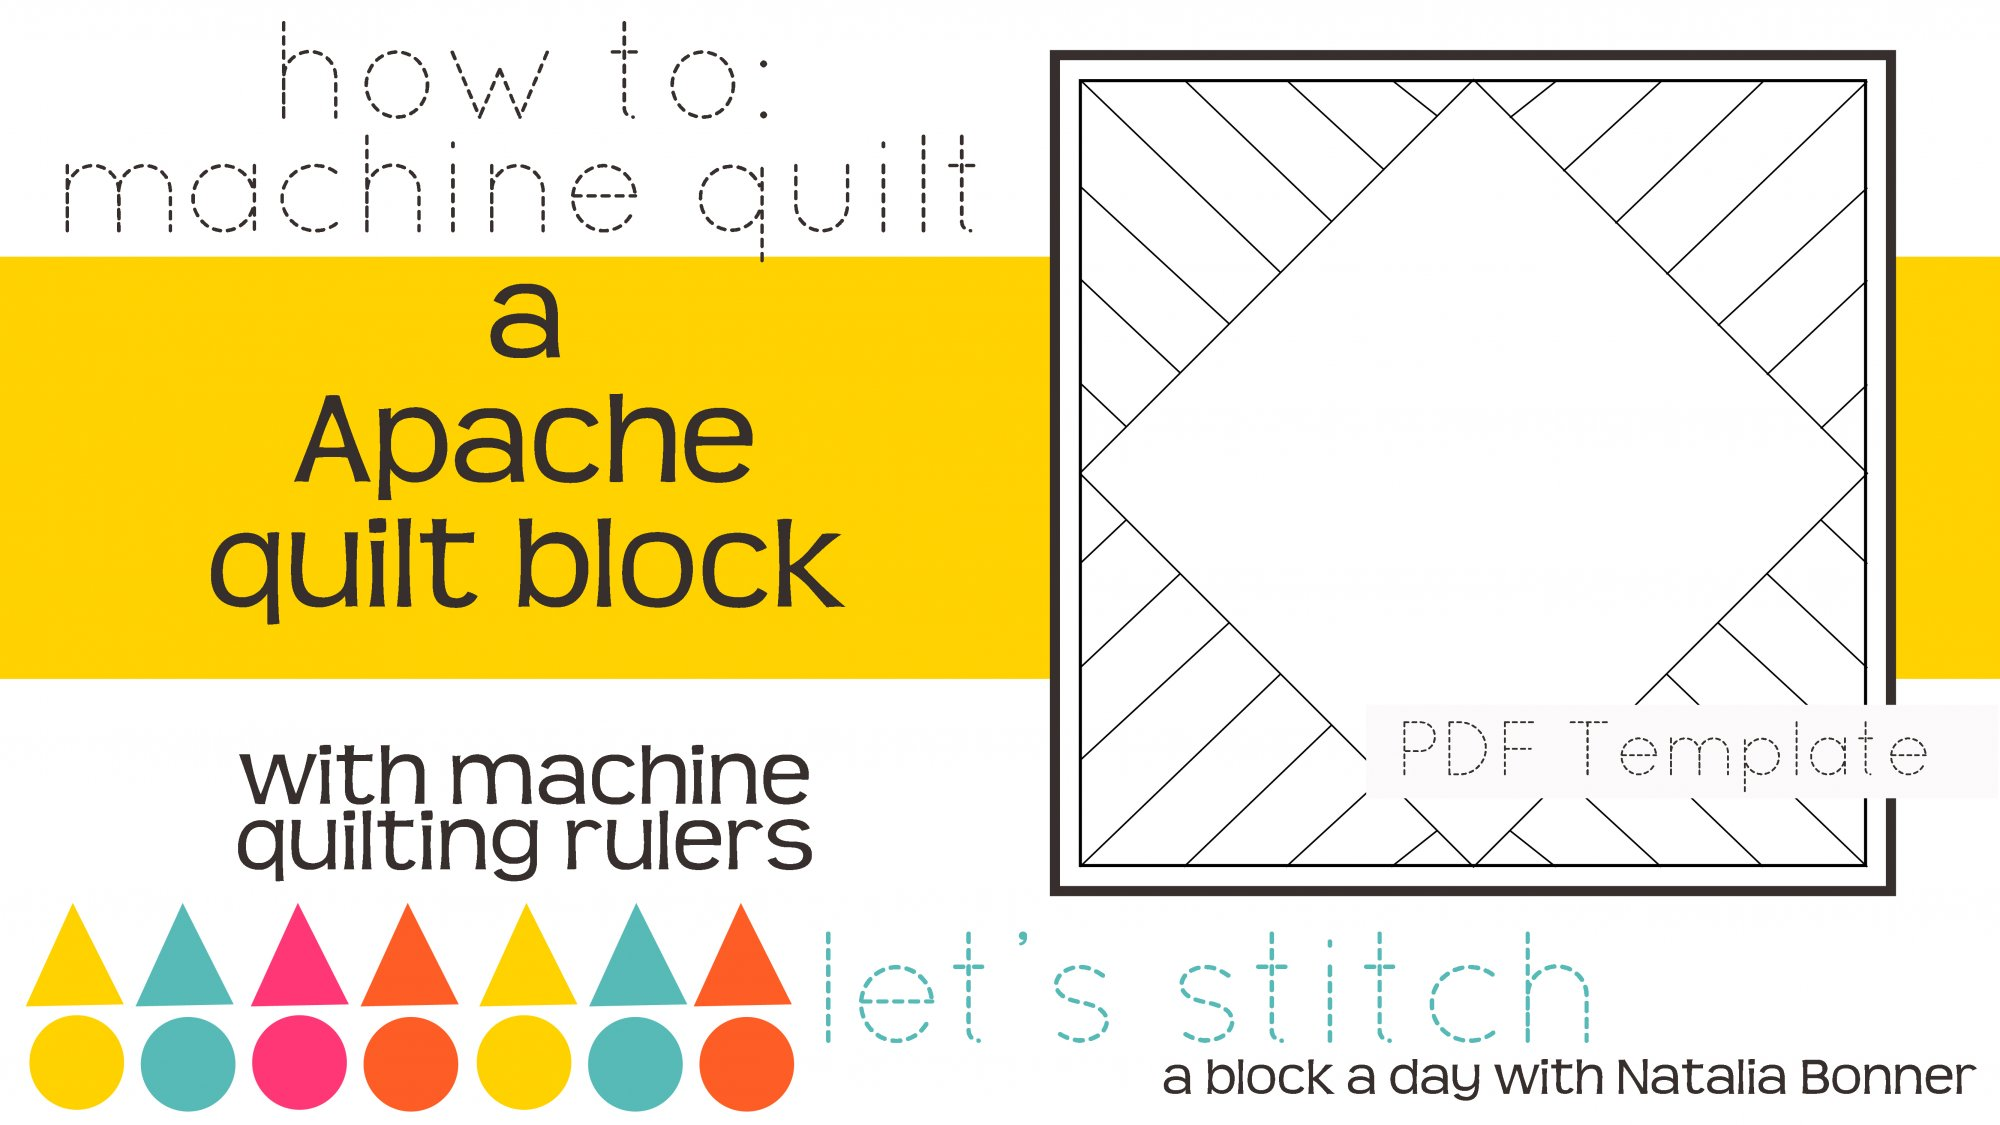 Let's Stitch - A Block a Day With Natalia Bonner - PDF - Apache